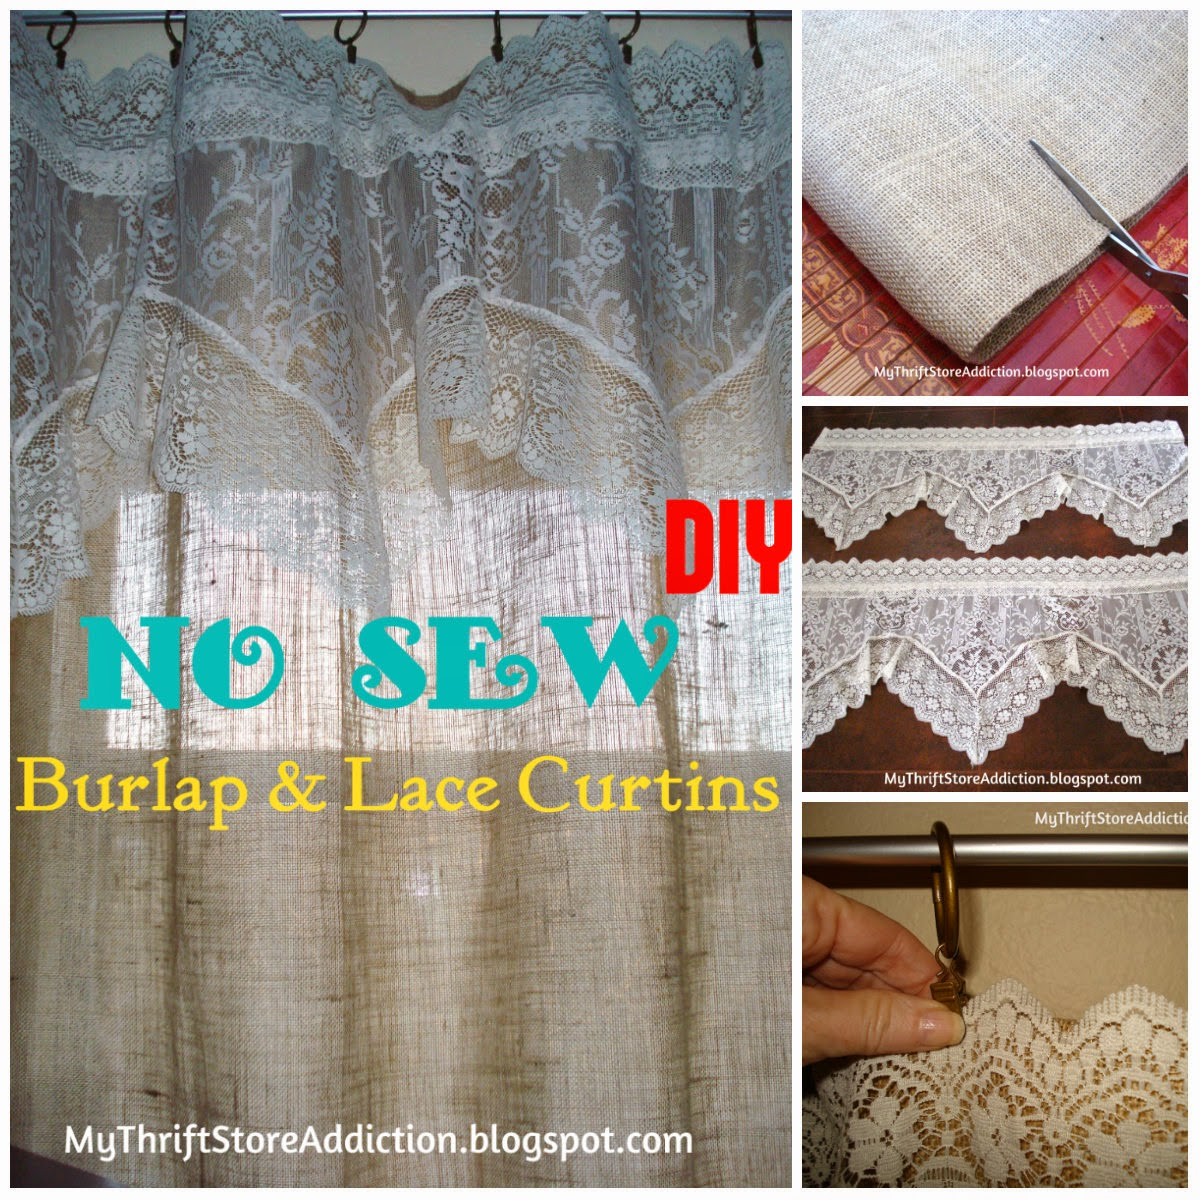 Burlap kitchen curtains no sew - Did You Know You Can Get Coupons From Hobby Lobby S Website I Get Them And Store Them In My Phone I Purchased 6 Yards Of Natural Colored Burlap